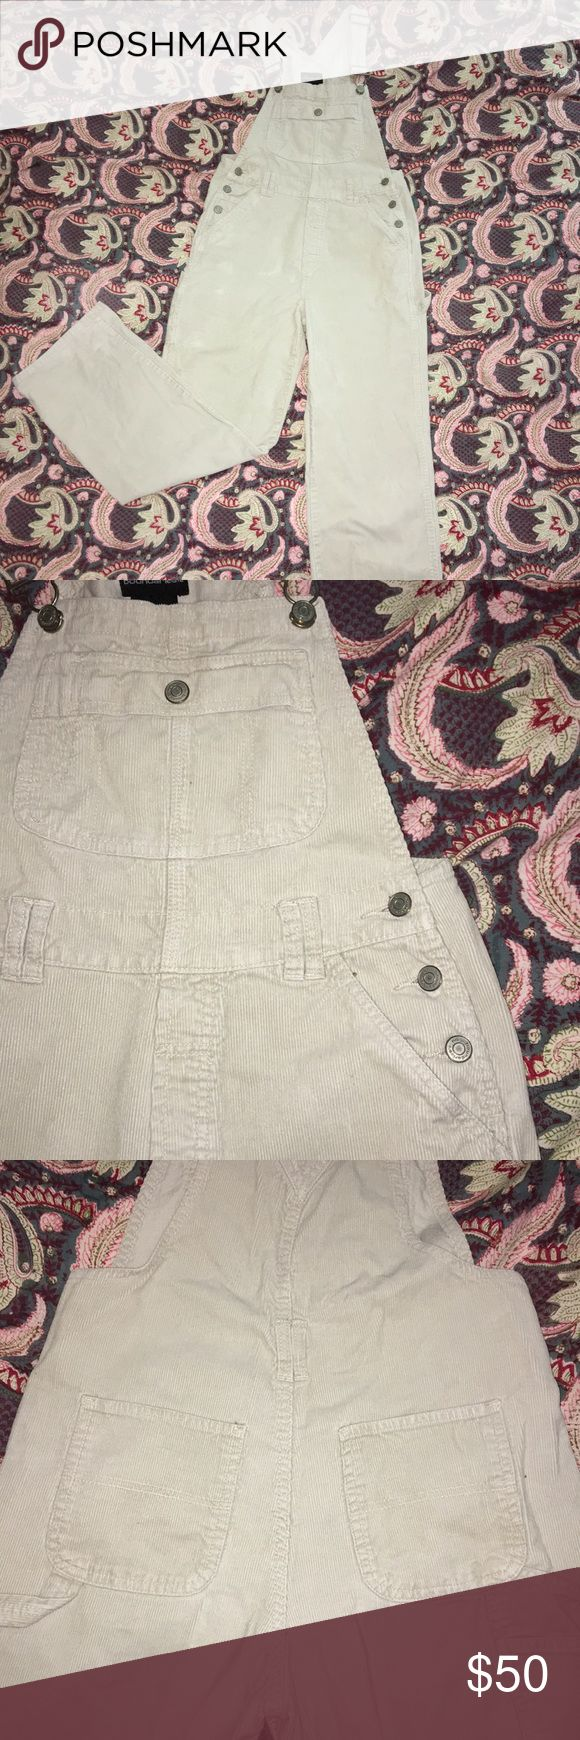 """""""Vintage"""" Corduroy Overalls These vintage overalls are a nice corduroy material! The beige color matches with just about anything you can find in your closet! They are super comfy and can spice up any outfit, giving it a vintage feel. No Boundaries Pants Jumpsuits & Rompers"""